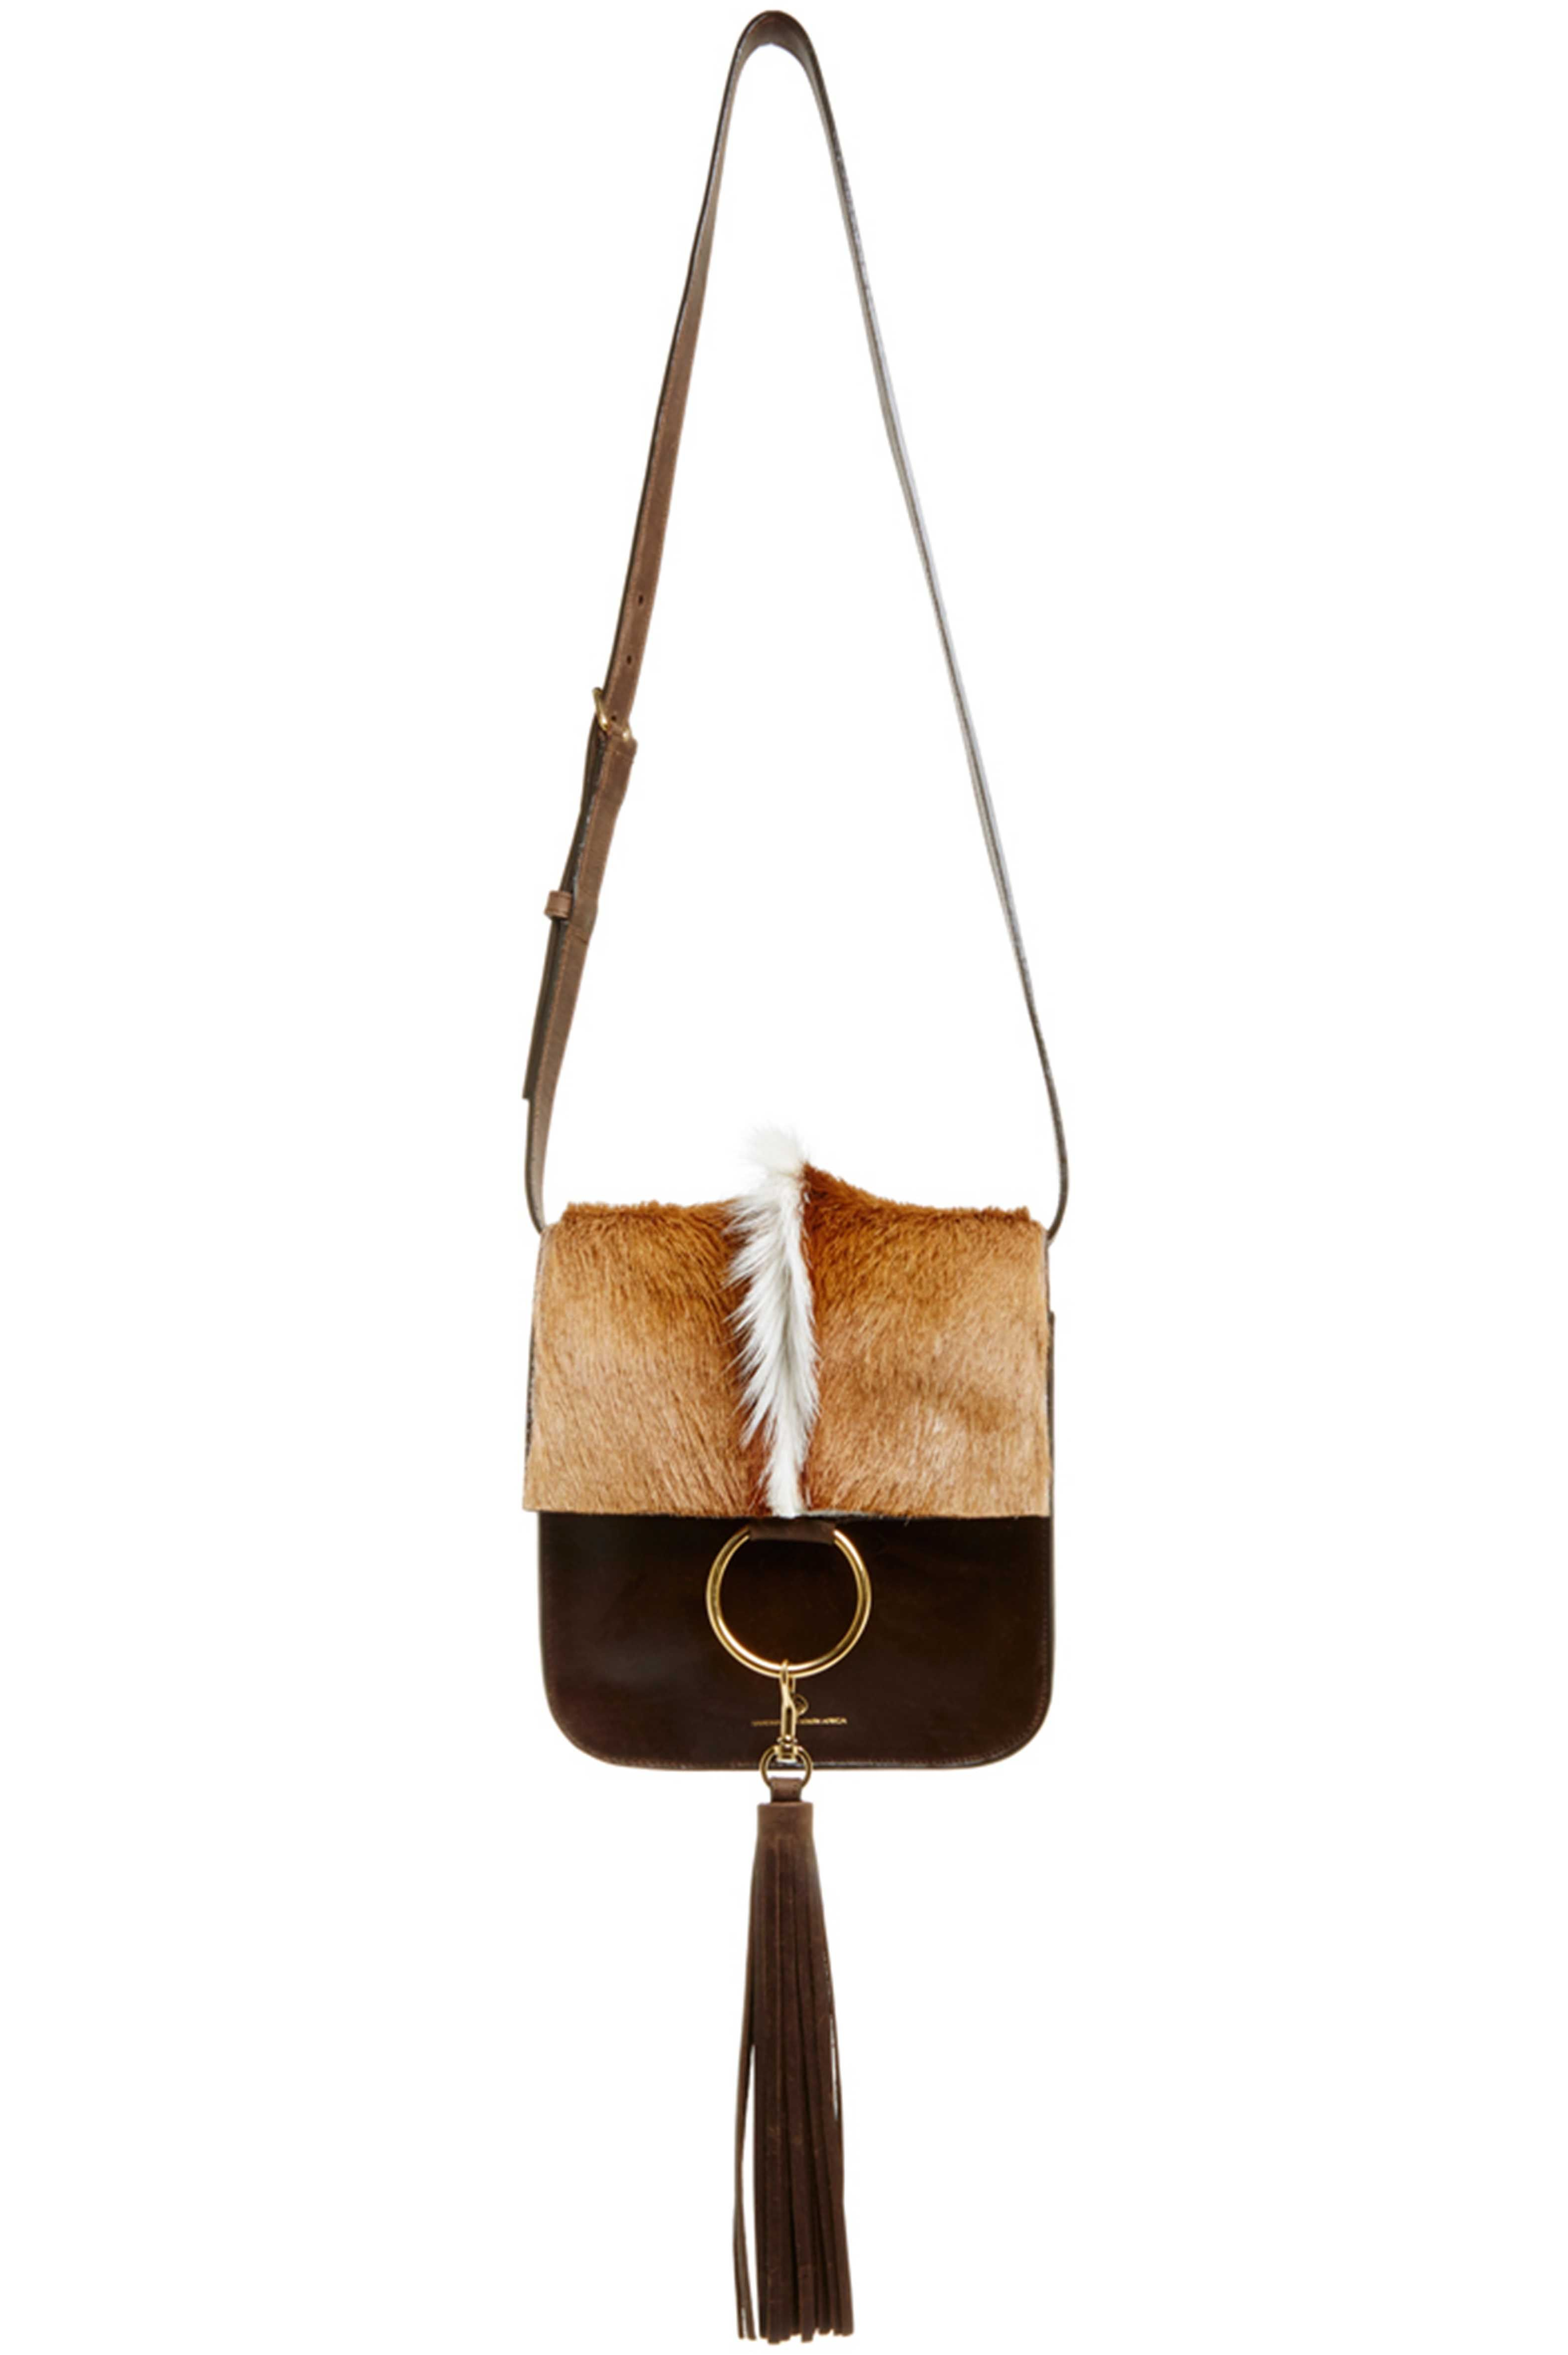 Palma Springbok Leather Crossbody Bag By Brother Vellies Handcrafted In South Africa From Natural Materials